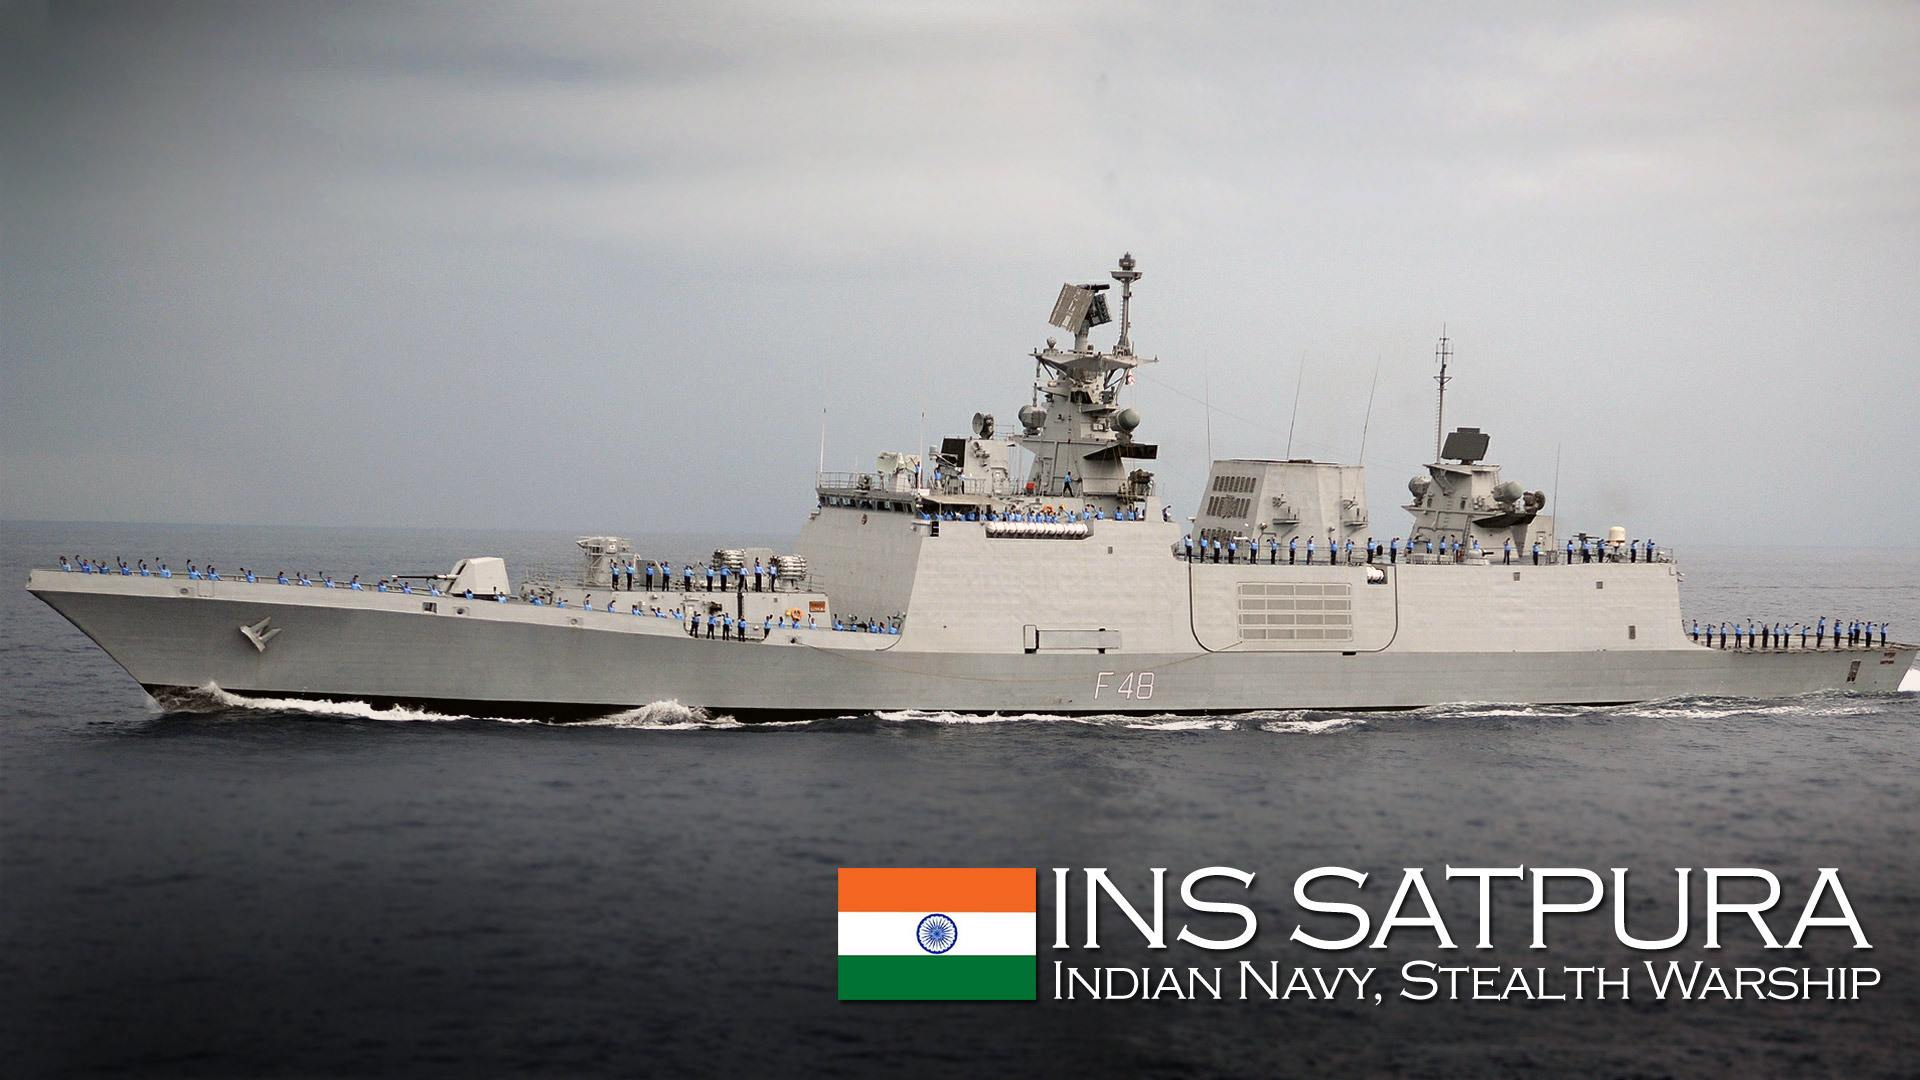 Indian Navy Image Gallery Wallpapers: Indian Navy Wallpapers